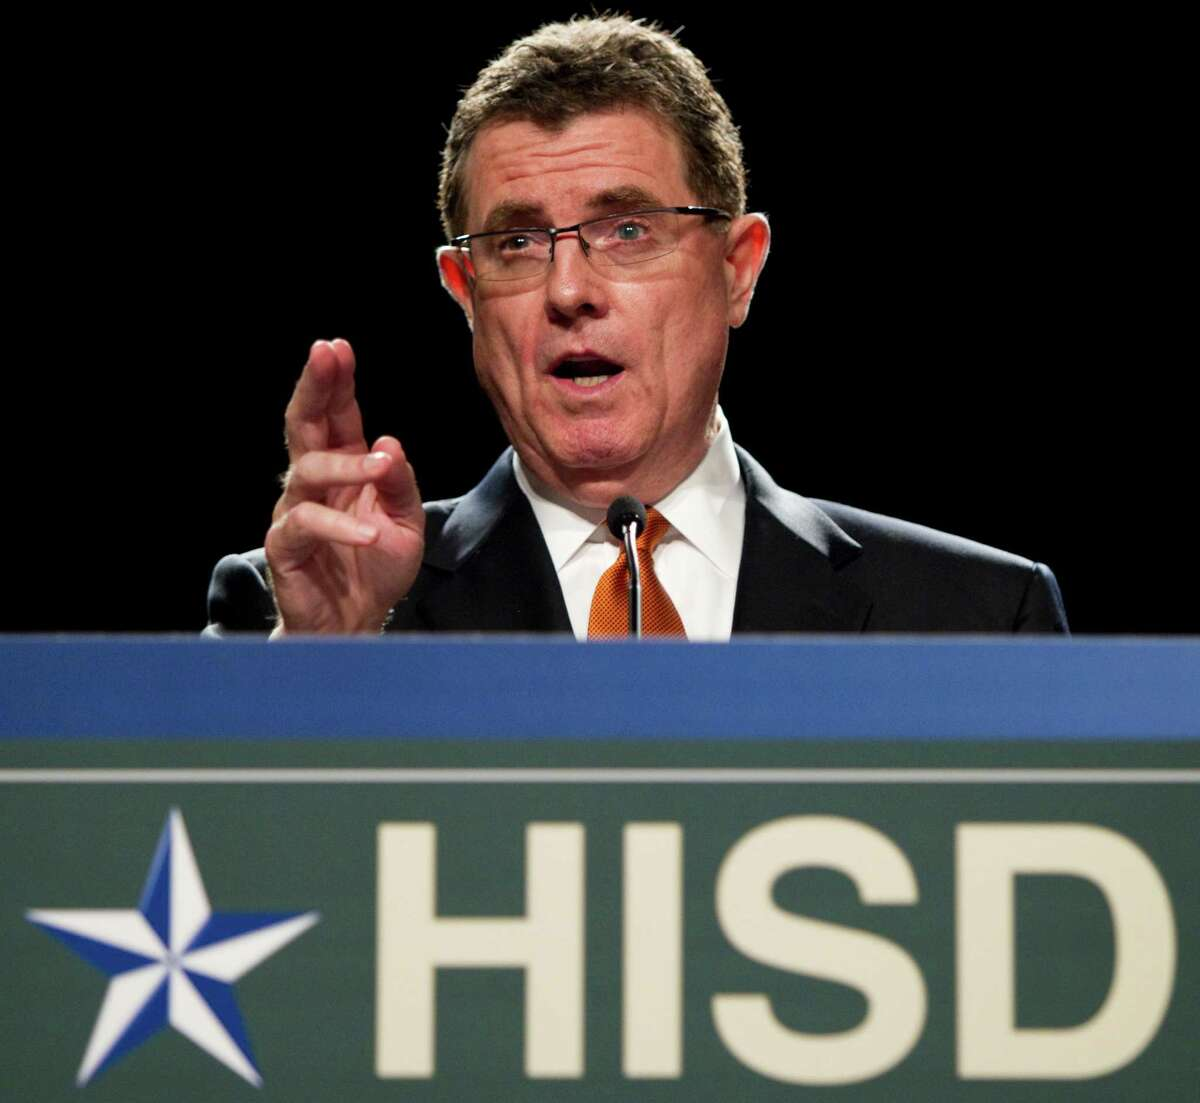 Houston Independent School District Superintendent Terry Grier said students' safety is the district's No. 1 priority. HISD received a threat targeting unnamed campuses. The L.A. school system received a similar threat earlier this week. Keep clicking to see photos from the scare that closed schools.